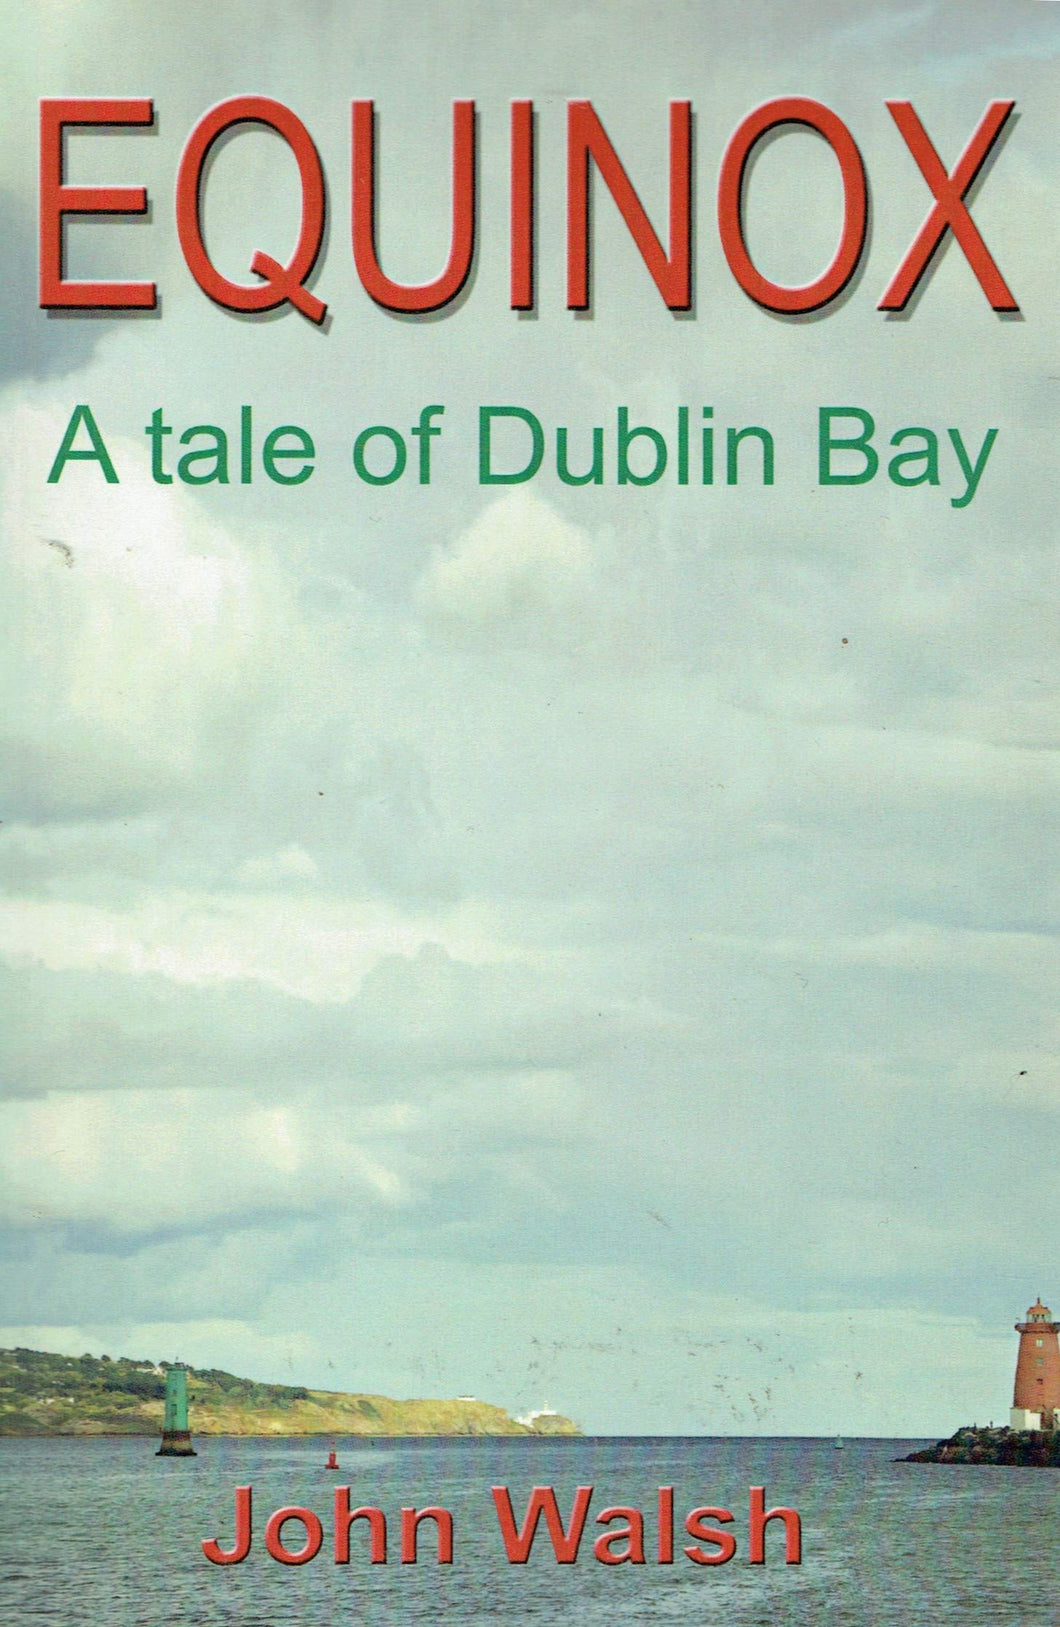 Equinox: A Tale of Dublin Bay